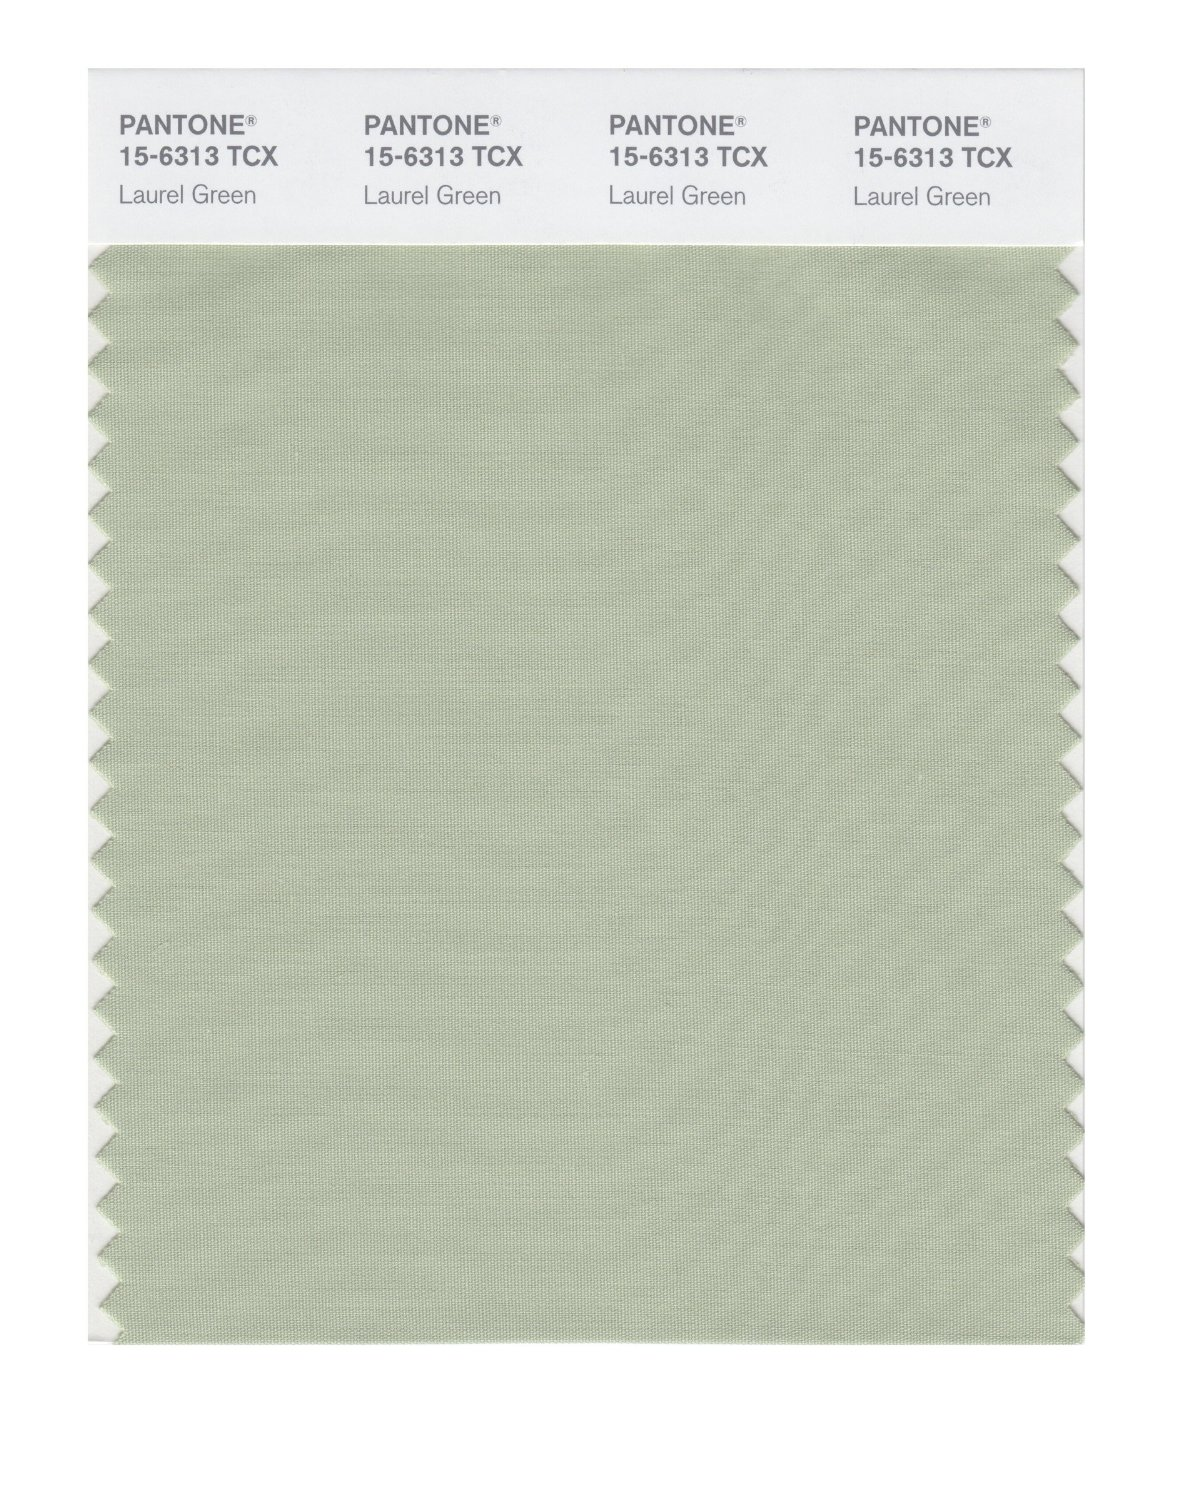 Pantone Smart Swatch 15-6313 Laurel Green